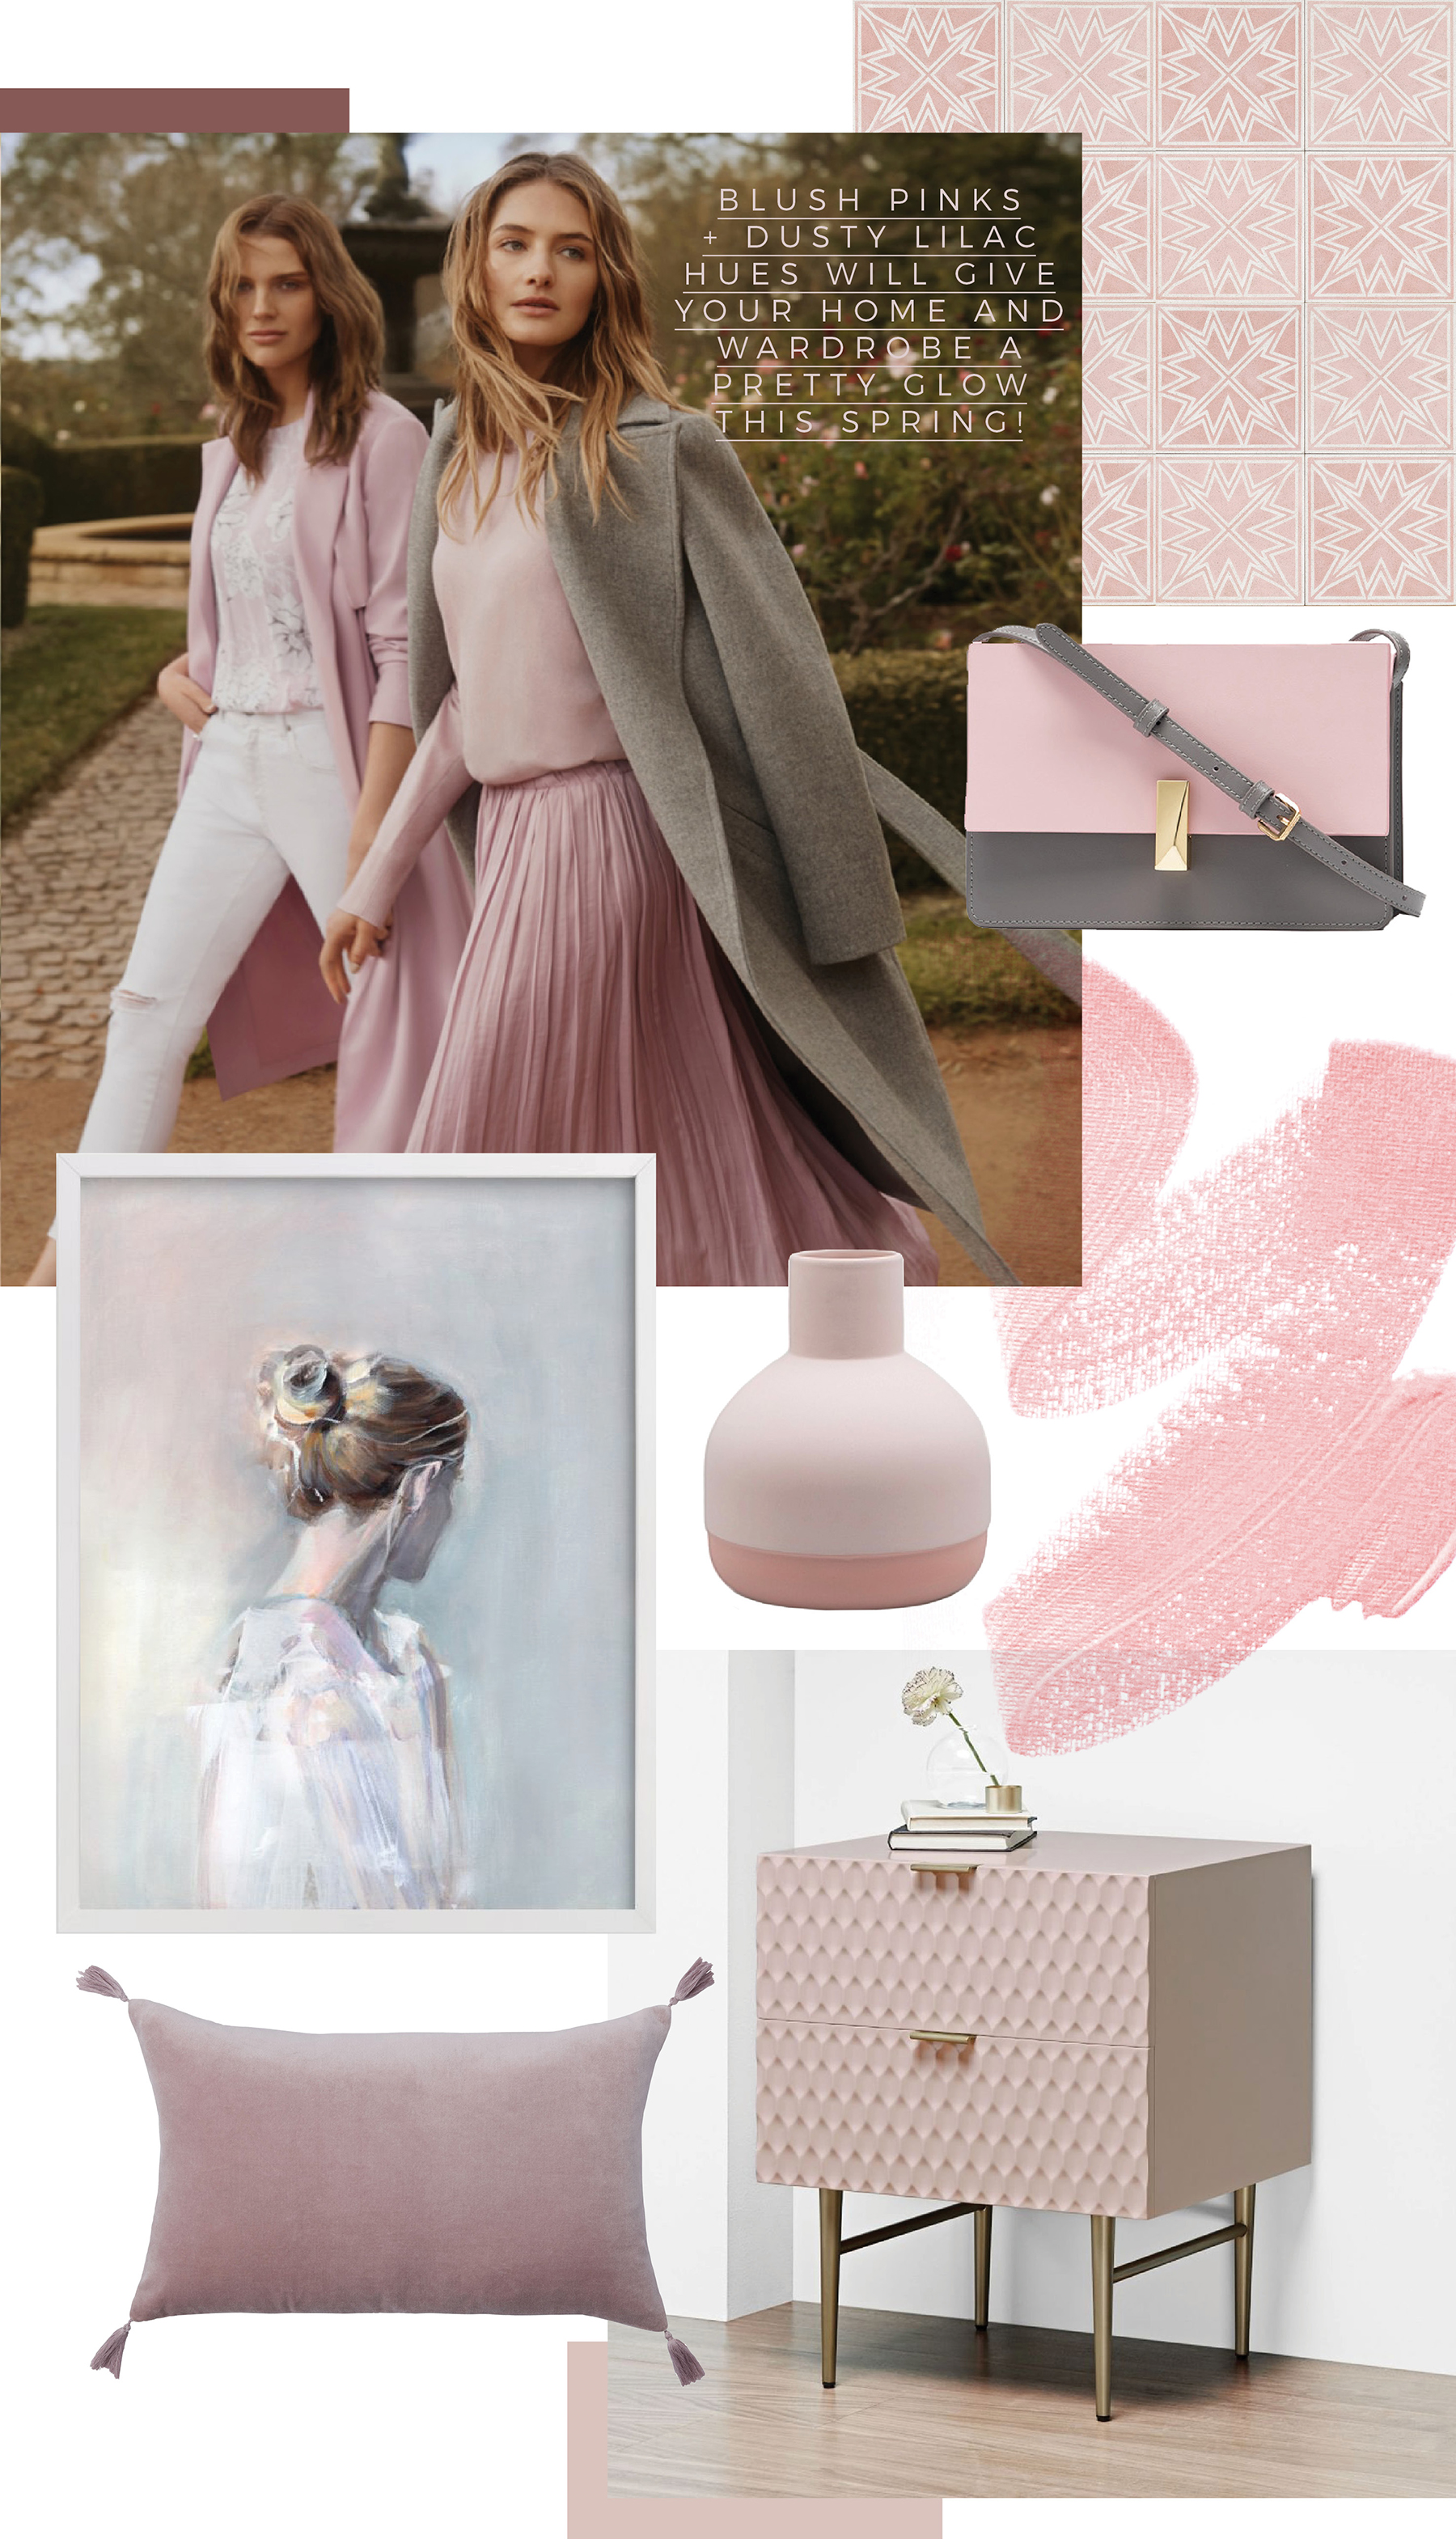 adore_home_blog_colour_trend_spring_blush_pink_lilac_pretty_feminine_on_trend_2018.jpg